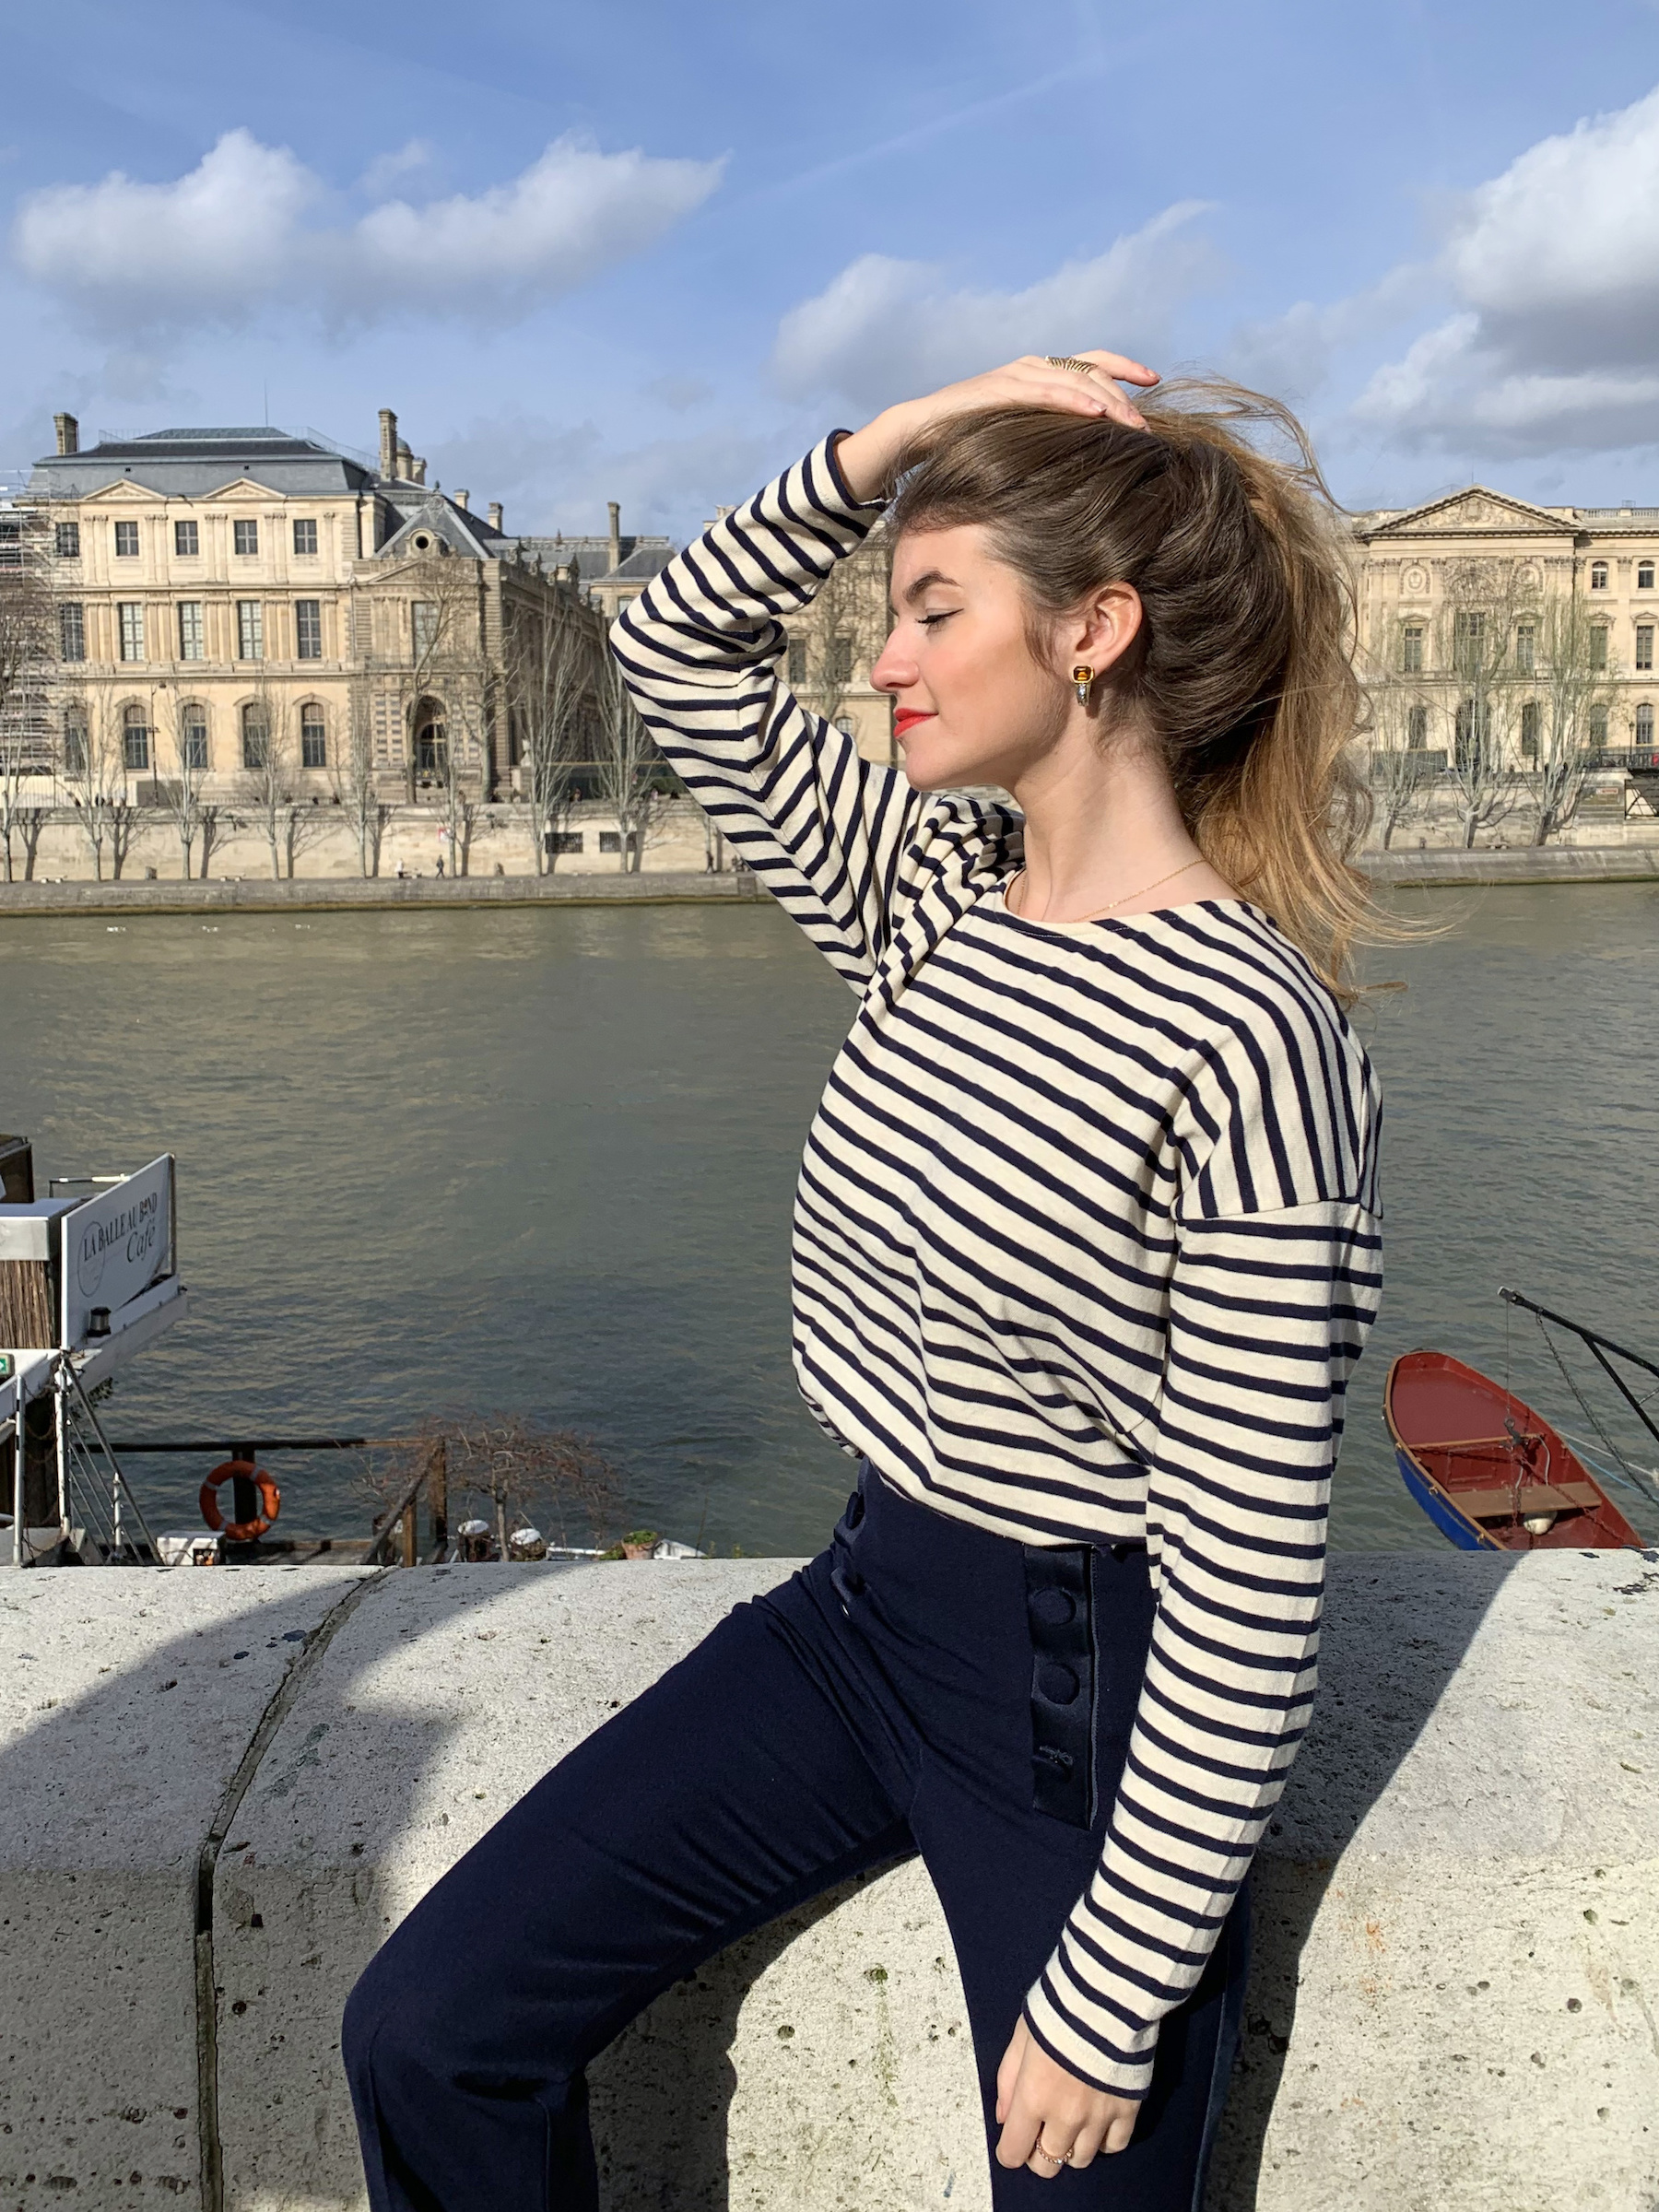 Constance Arnoult wearing a marinière top on the banks of the Seine River